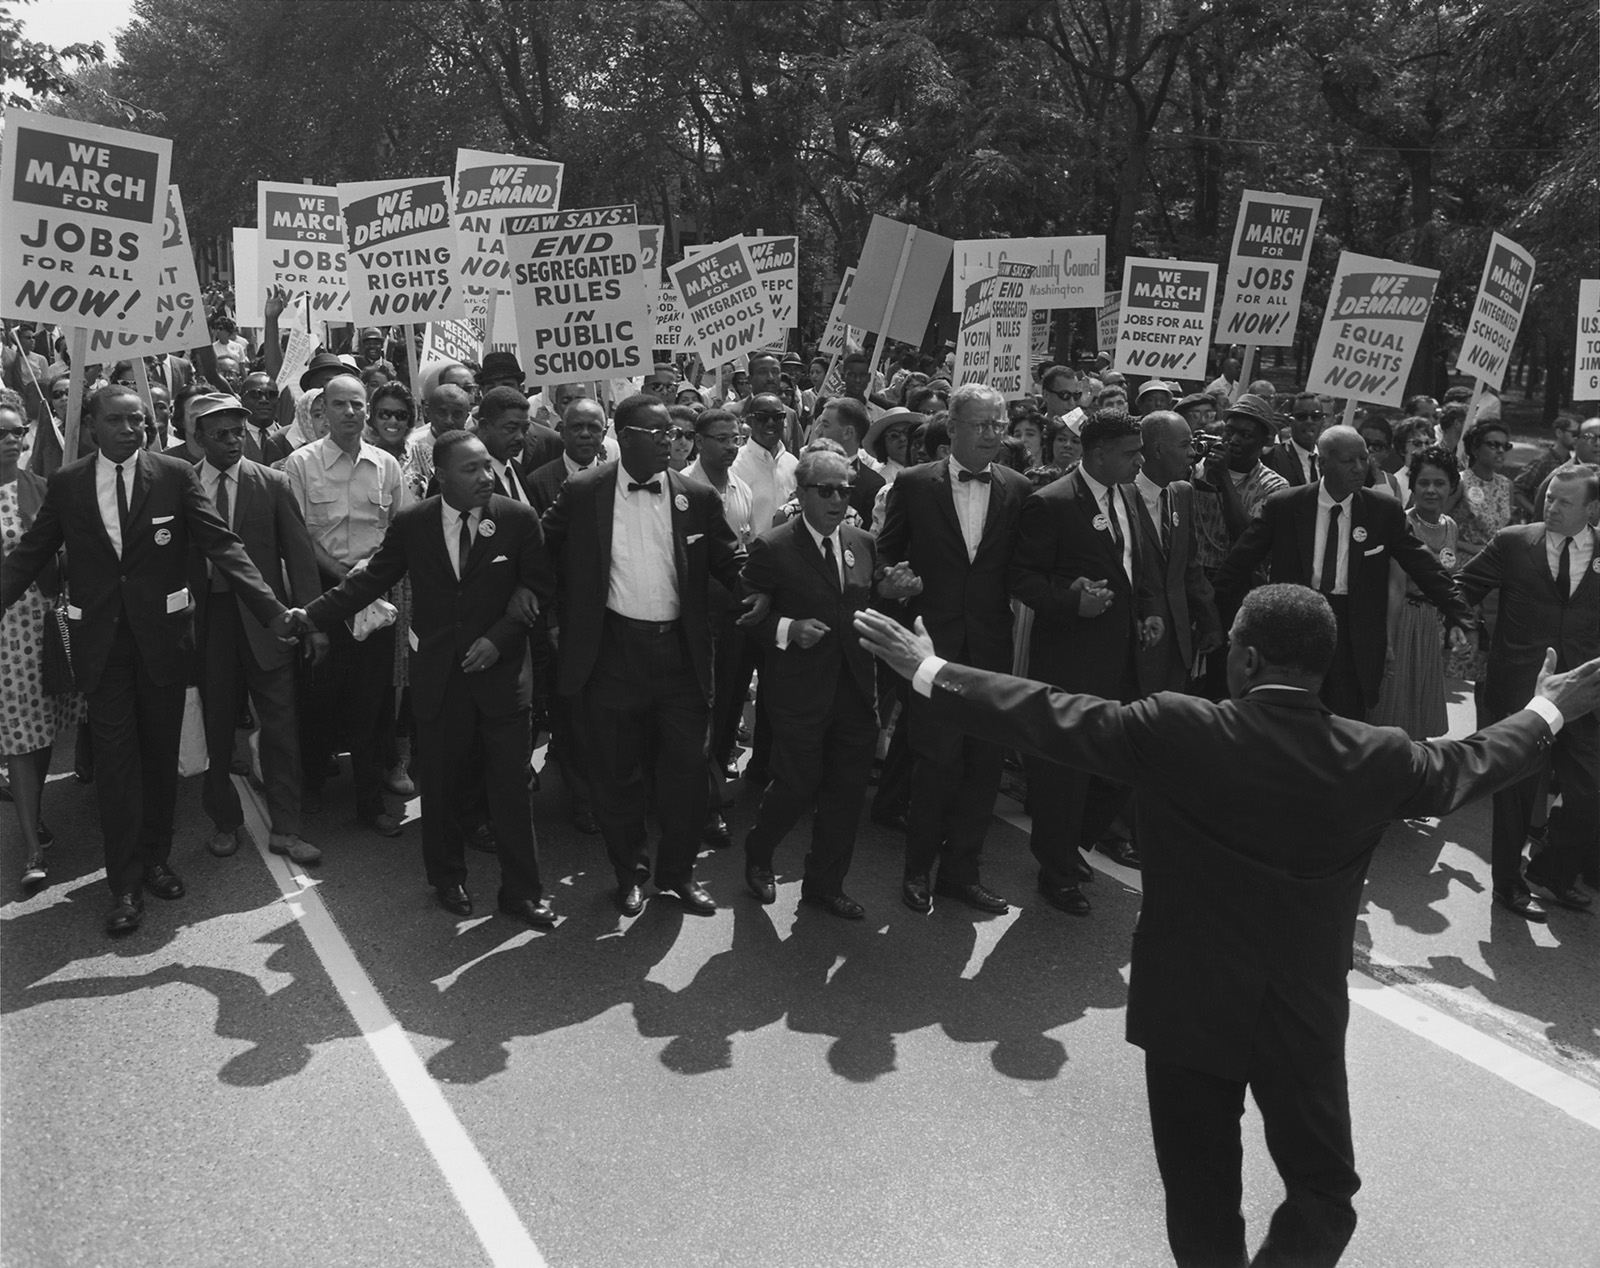 civil rights movement prominent in he sixties Civil rights movement  he turned to activism after being arrested at a 1963 civil rights sit-in in atlanta  the sixties underground press and the rise of.